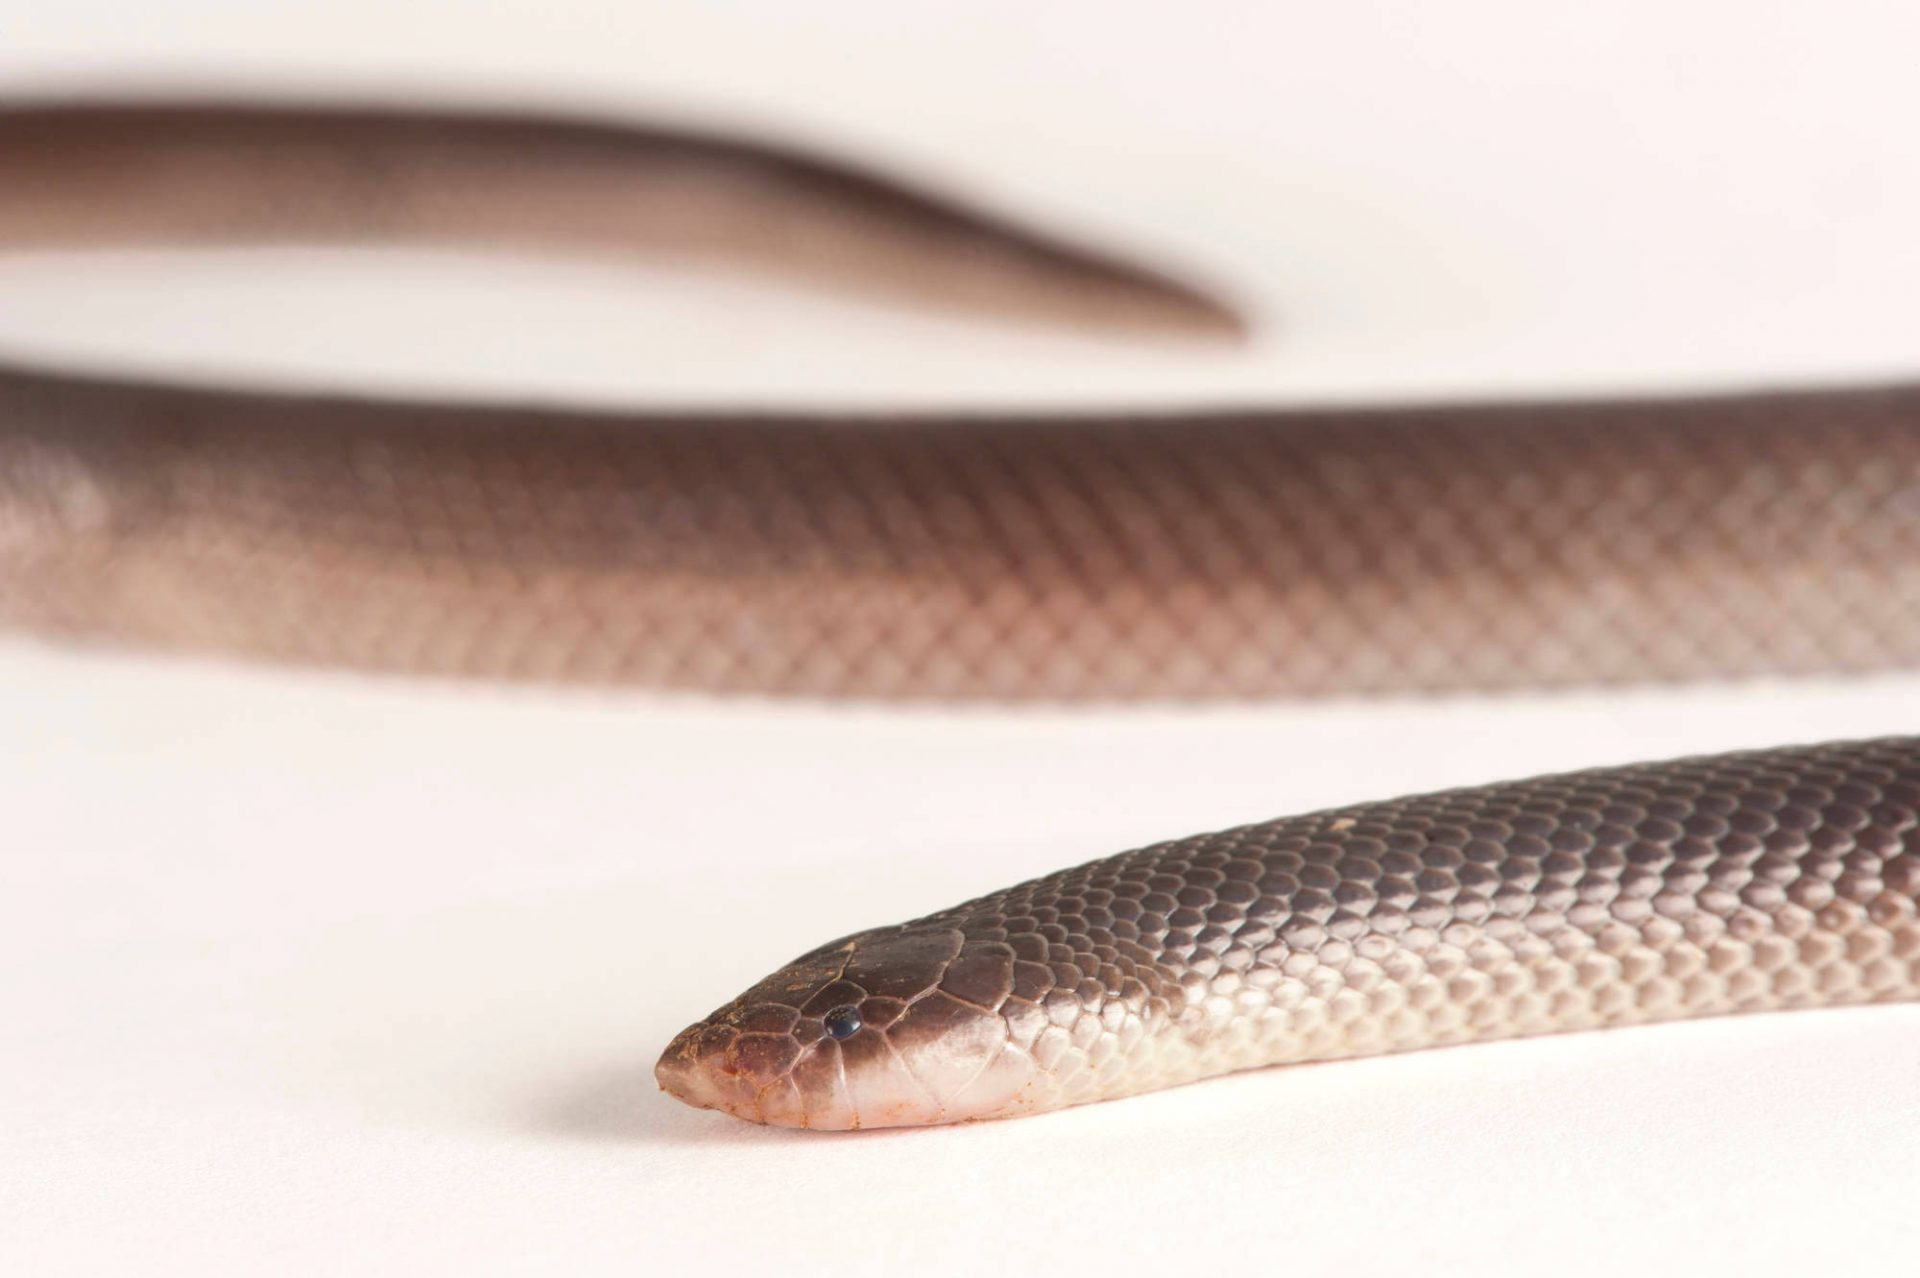 A stiletto snake (Atractaspis bibronii). This snake is also known as a Bibron's mole viper and Bibron's burrowing asp.